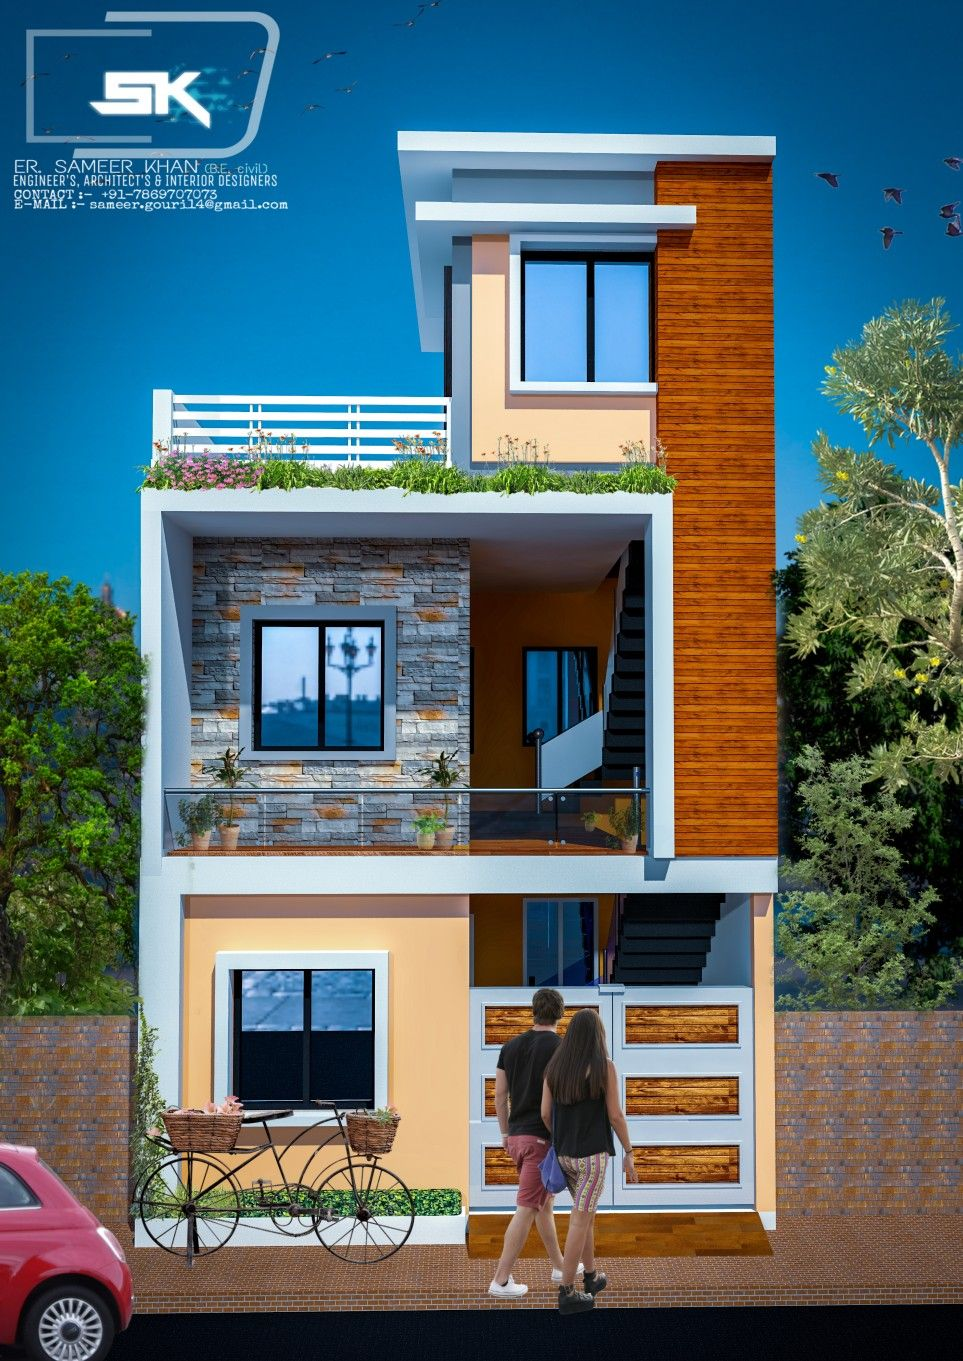 Small House Elevation Design Duplex House Design Latest House Designs: Introducing Indian Modern House Exterior Elevation By Er. Sameer Khan In 17' #indianhouse